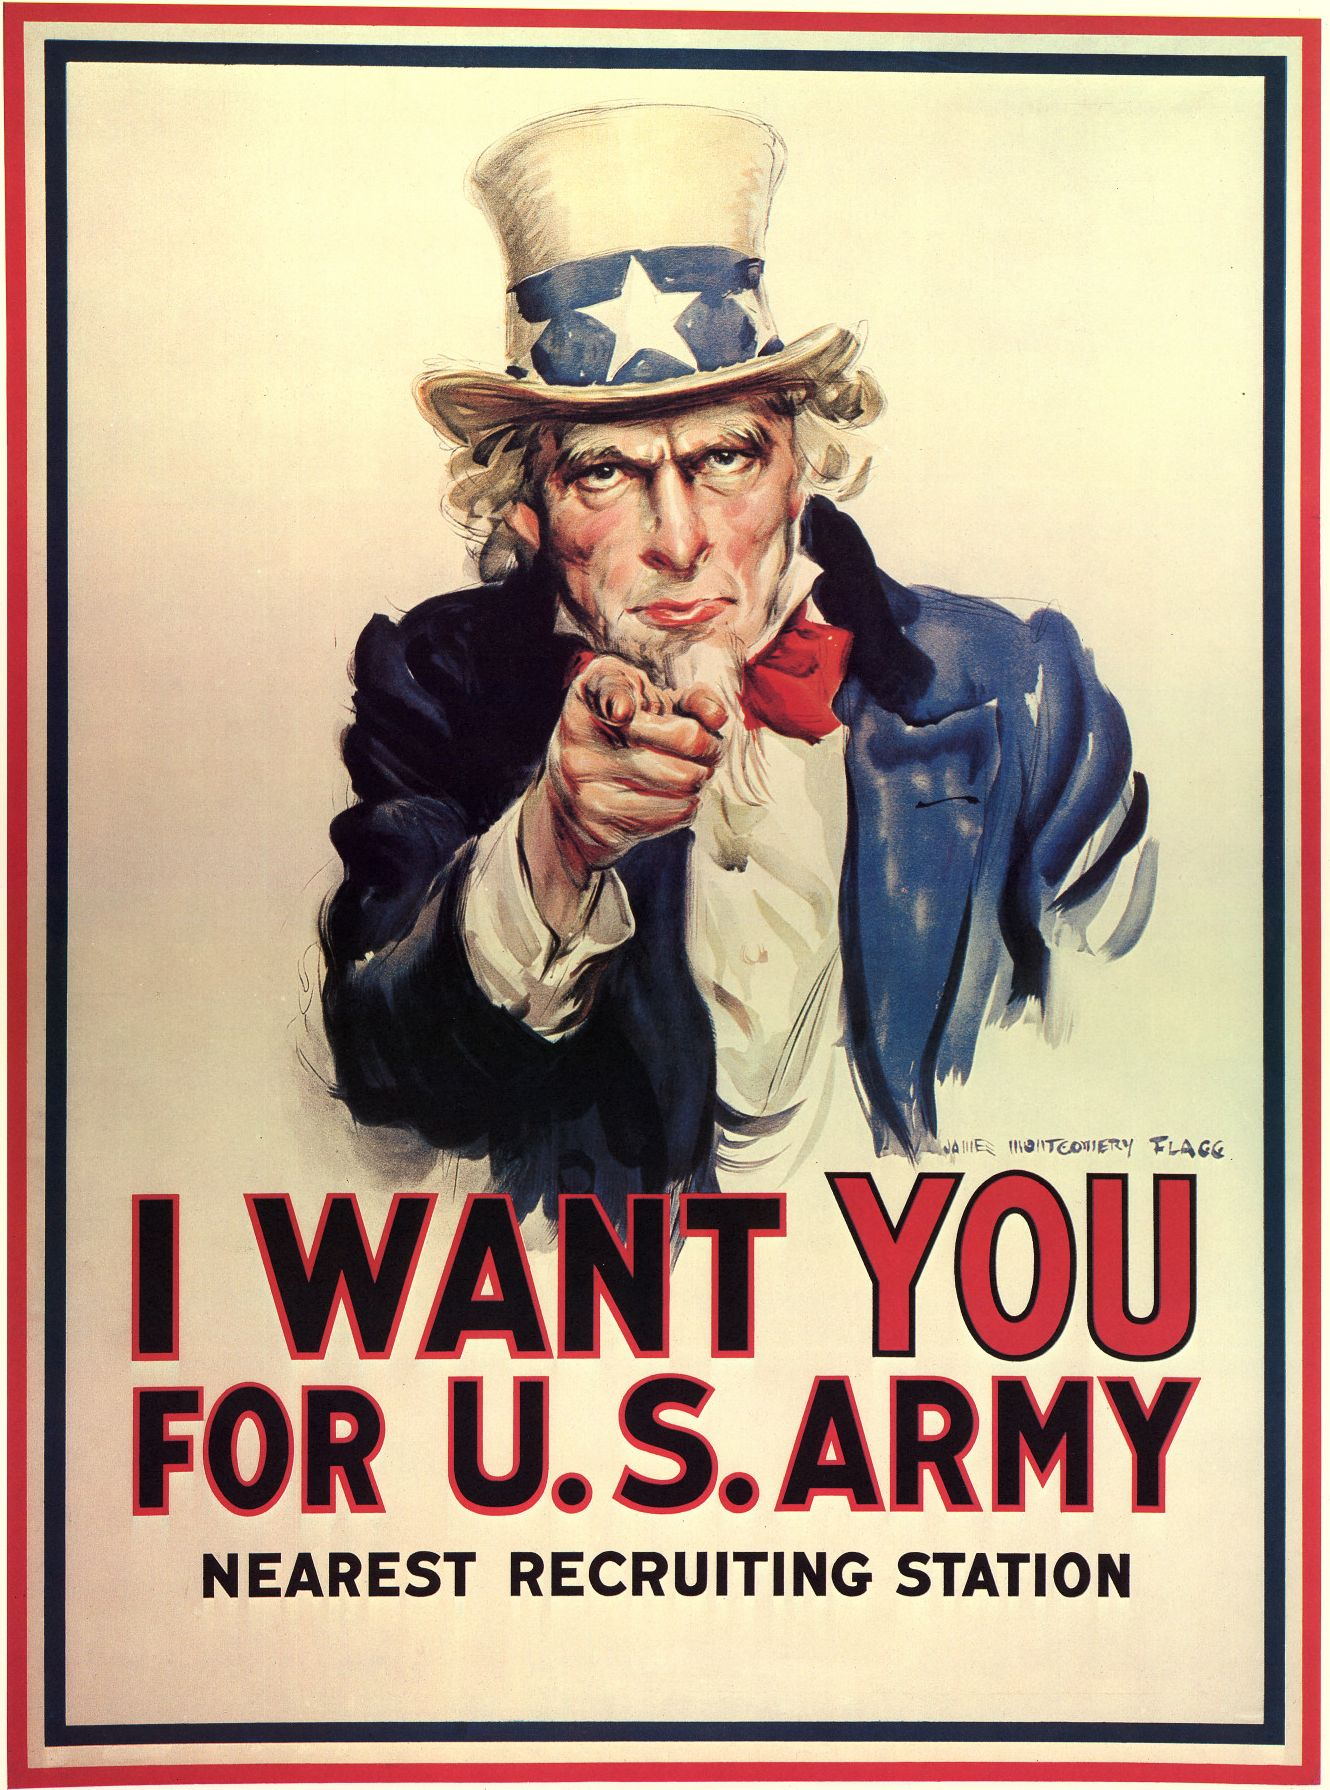 The U.S. recruitment image of Uncle Sam